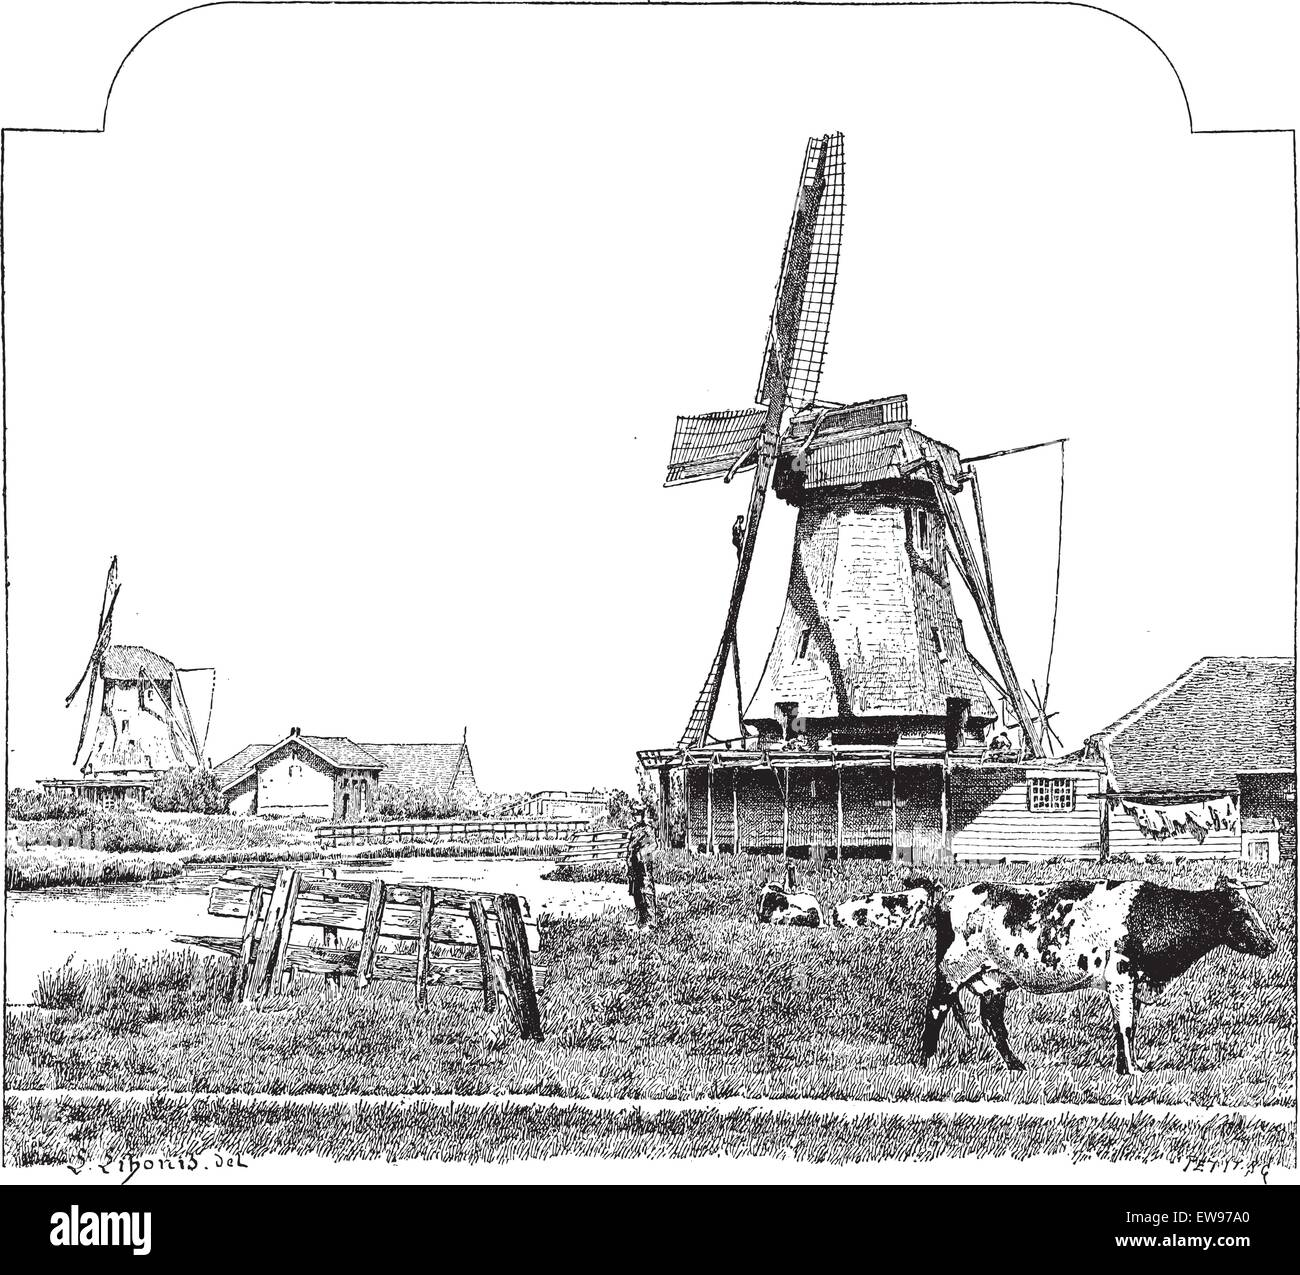 Mills, Zaandam (Holland), vintage engraved illustration. Dictionary of words and things - Larive and Fleury - 1895. - Stock Vector